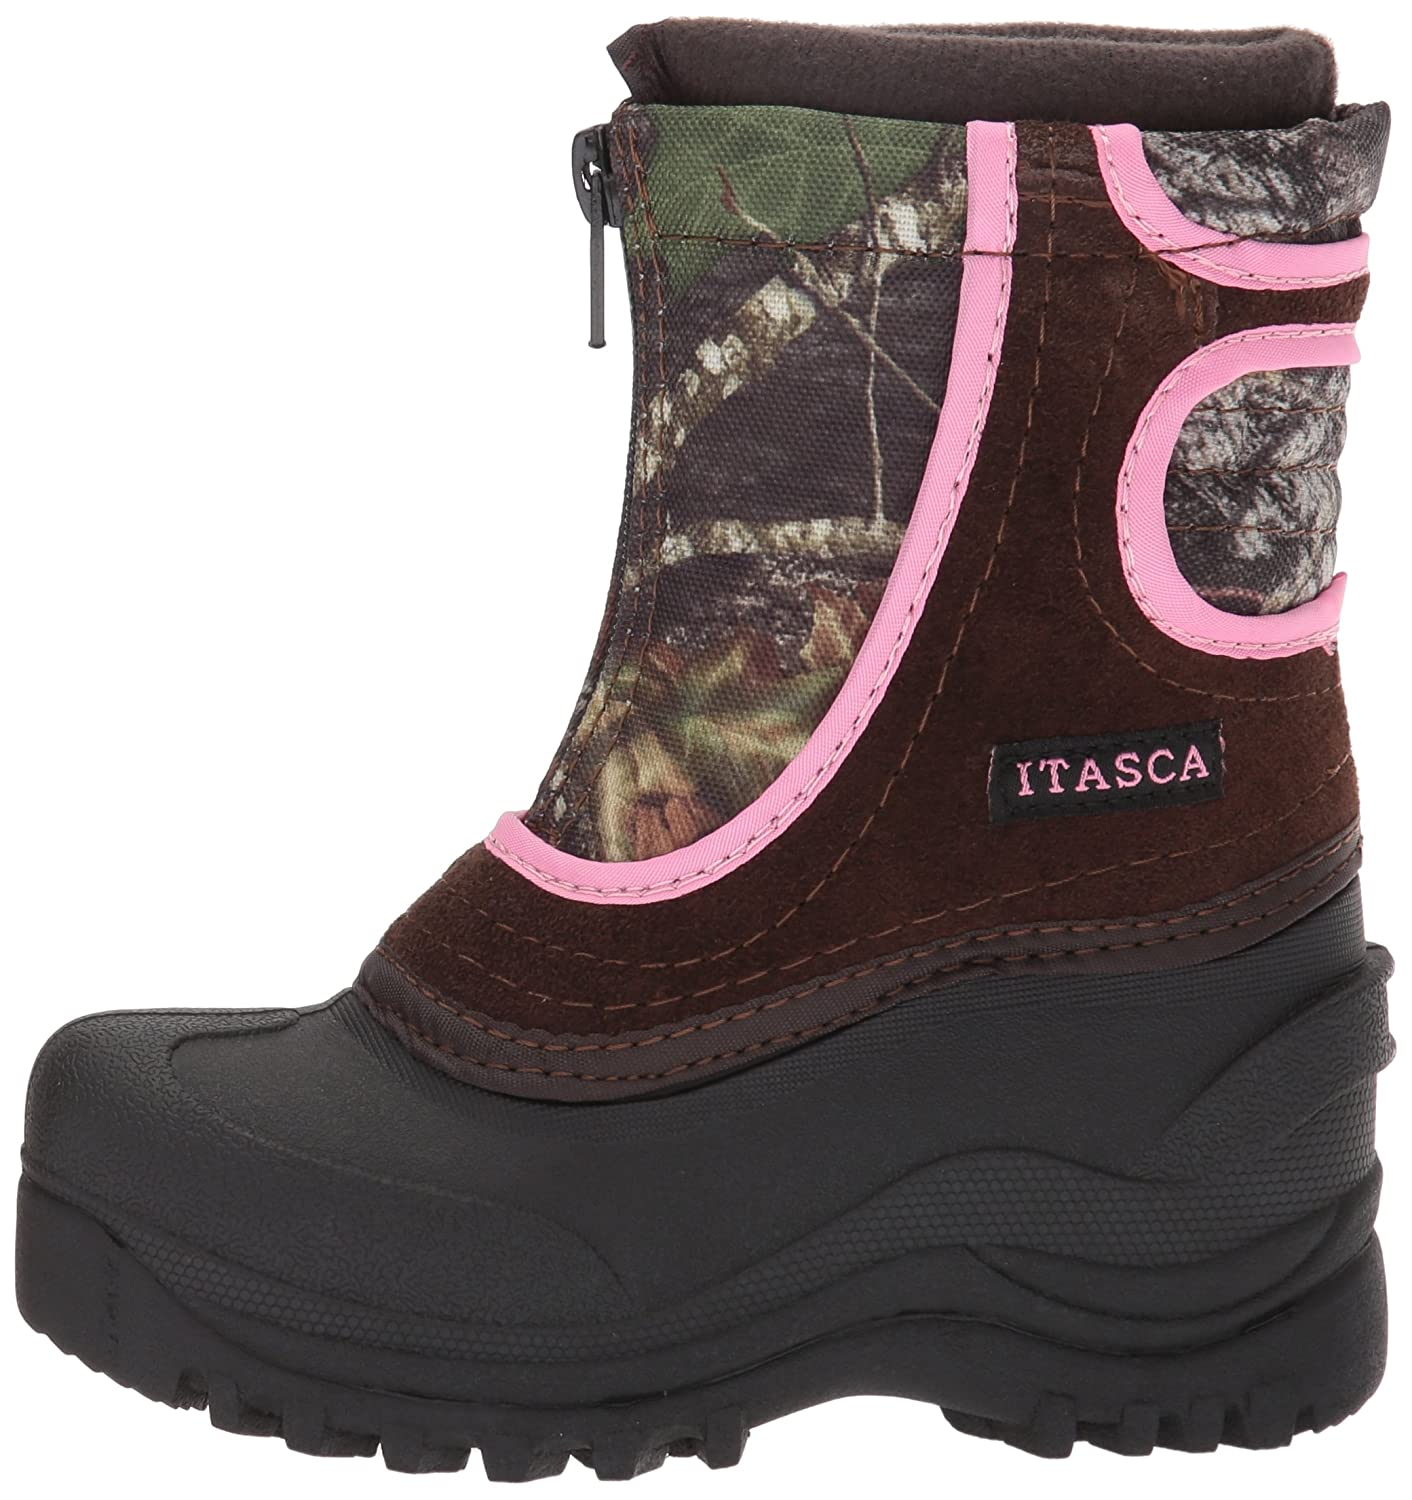 Itasca Kids Youth Waterproof Snow Stomper Winter Boot